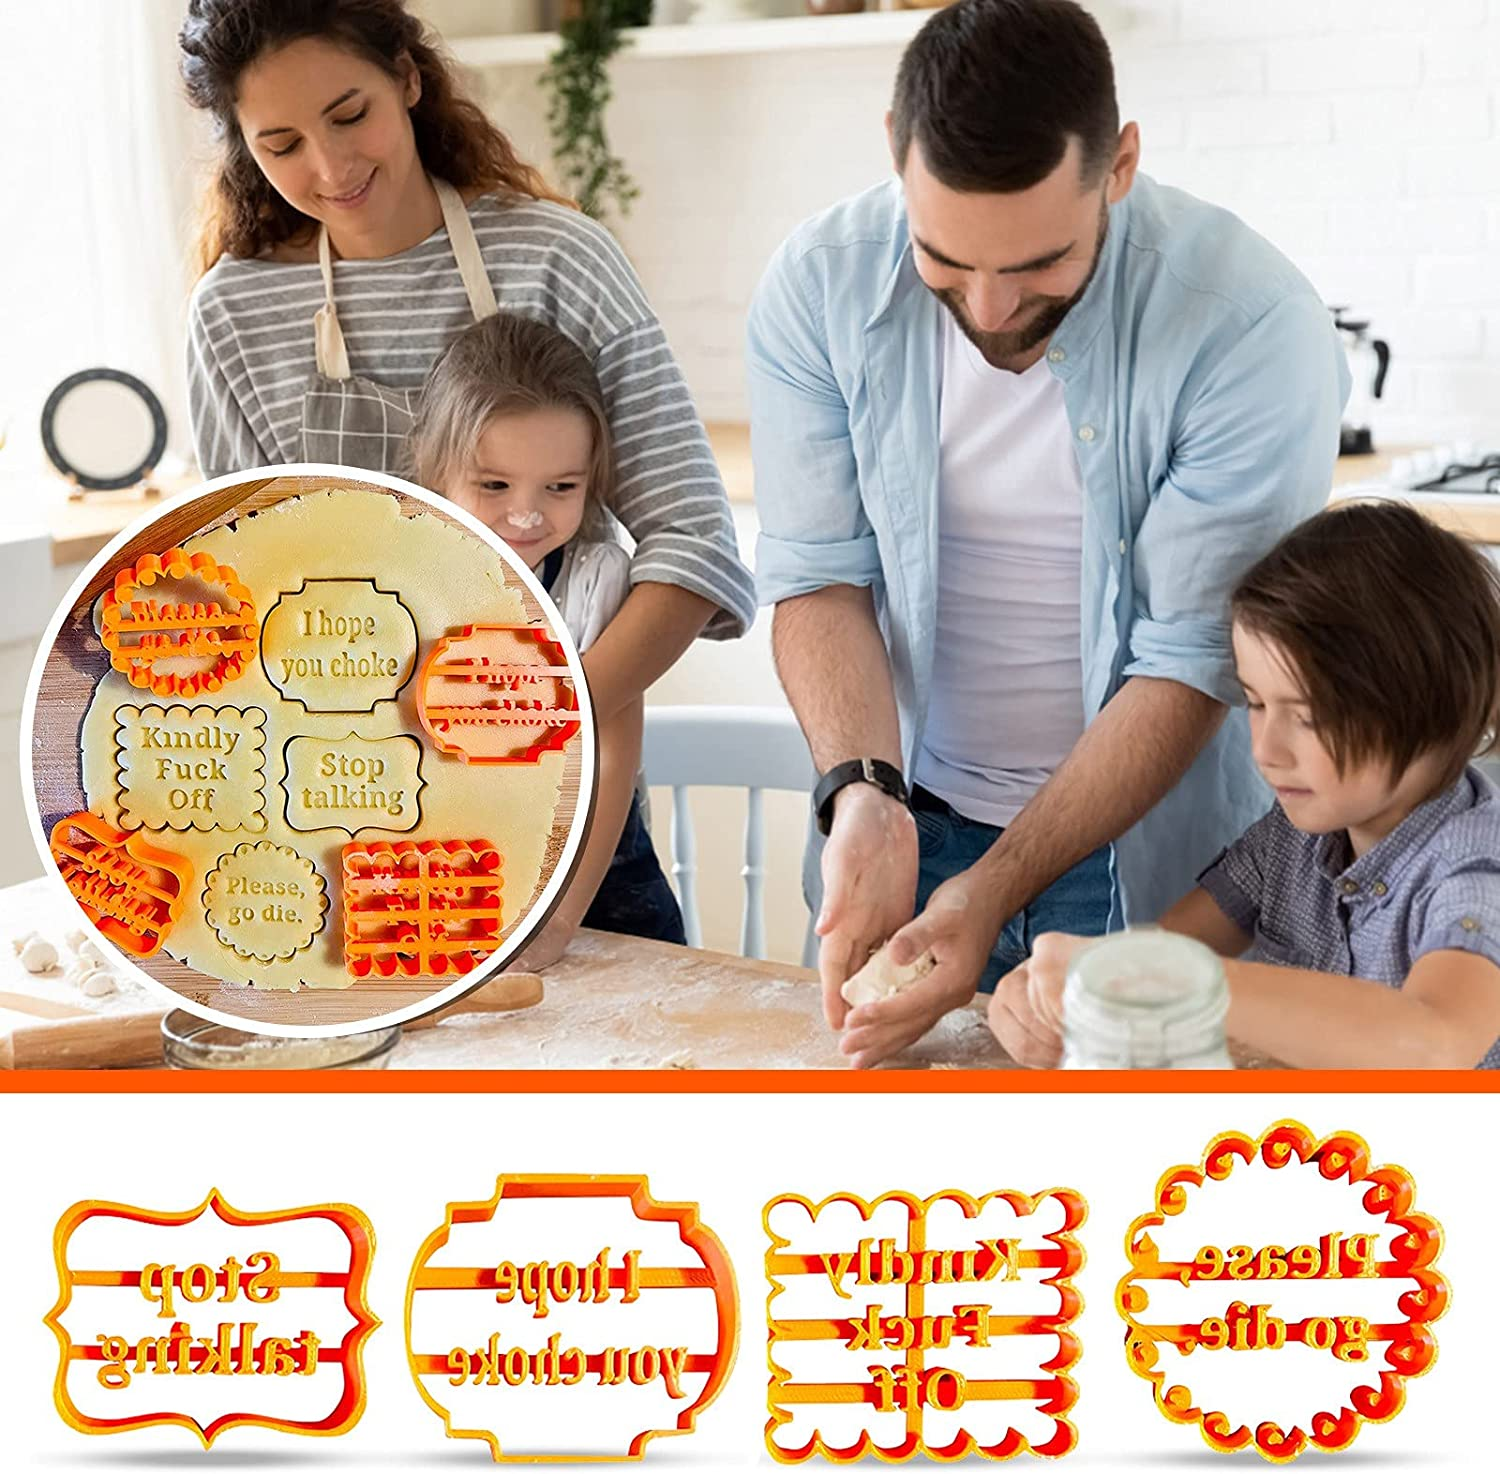 Funny Cookie Moulds Luxury goods for Baking with Good Wishes C half Molds